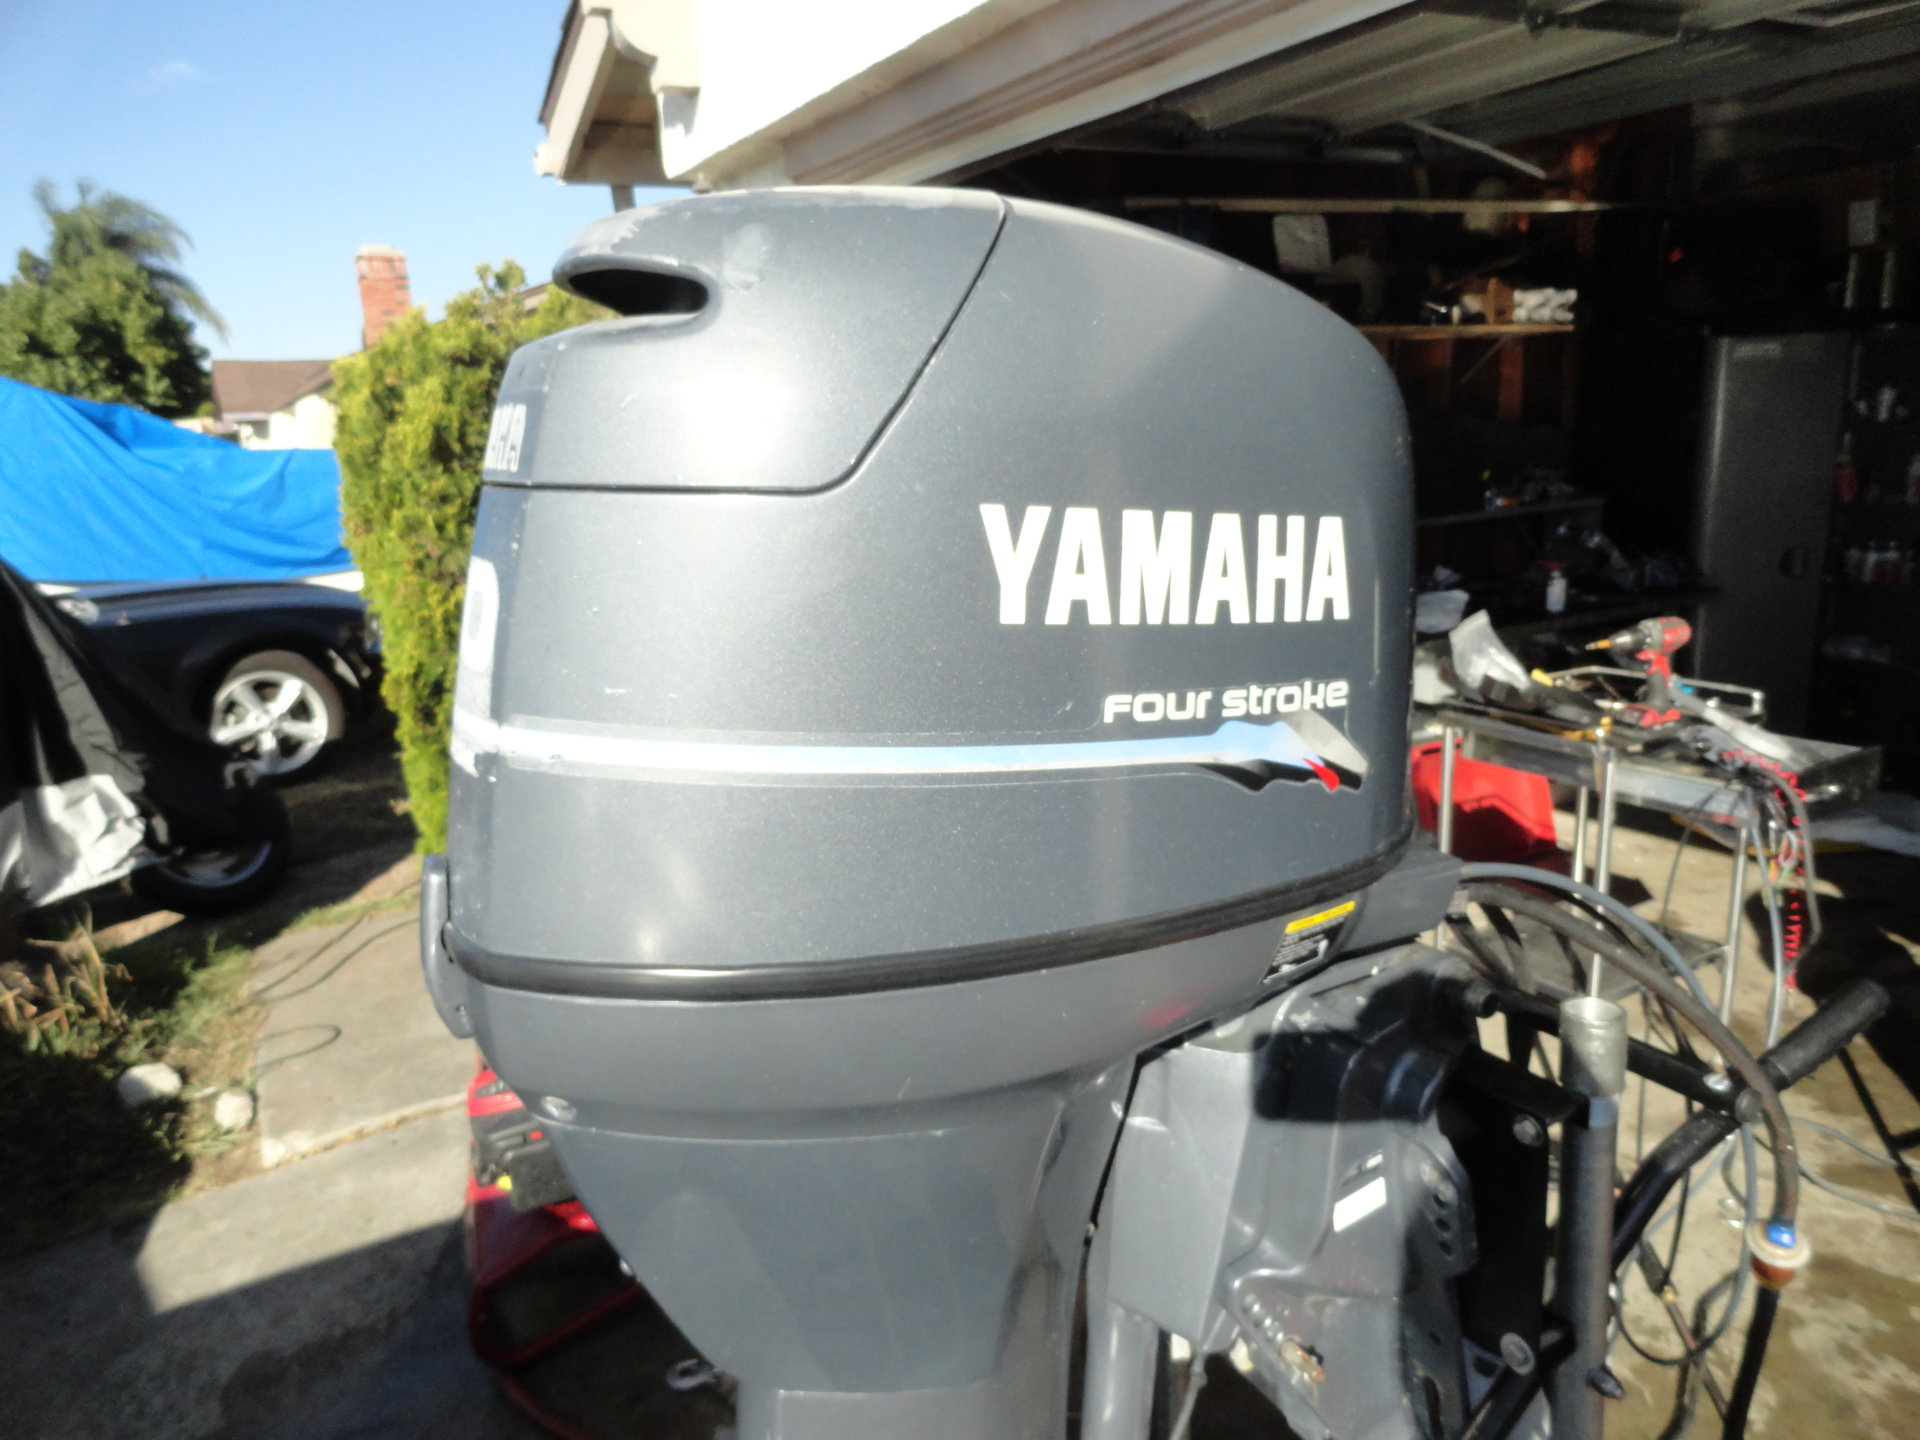 Yamaha f50 fourstroke outboard low hours run great for Yamaha outboard service san diego